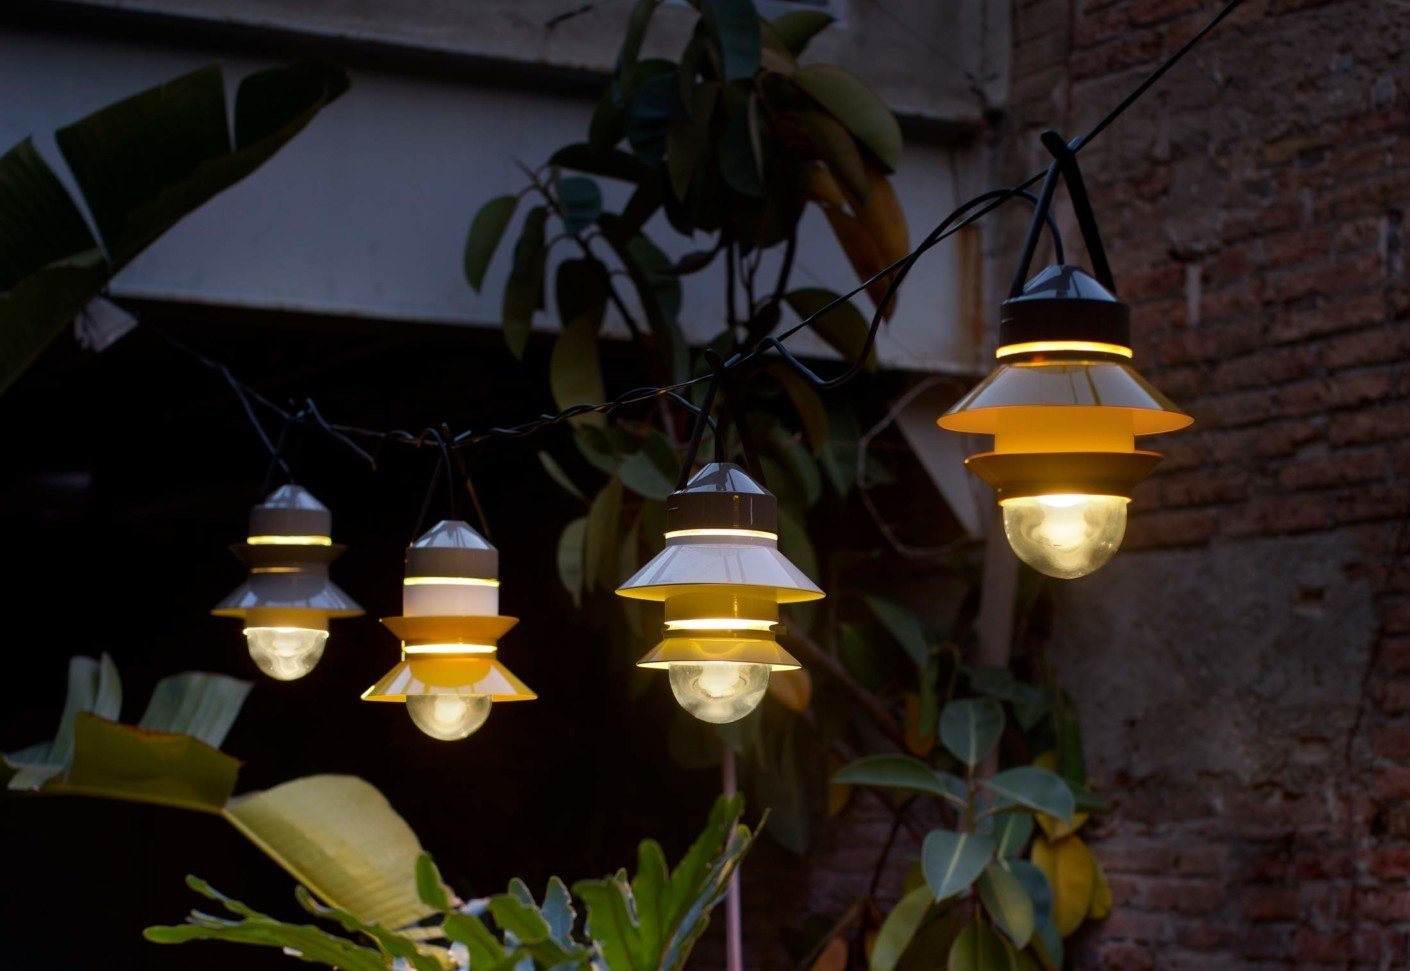 Marset's Santorini lights were designed by Sputnik Estudio in 2014. Available in white, gray, or mustard, the outdoor lamps are inspired by fishing boat lanterns and can be customized for your space—including how many shades to place on the diffuser, the order, position, and direction.  Photo 6 of 6 in Extend Your Time Outside With These 6 Innovative Lighting Designs For Your Outdoor Space